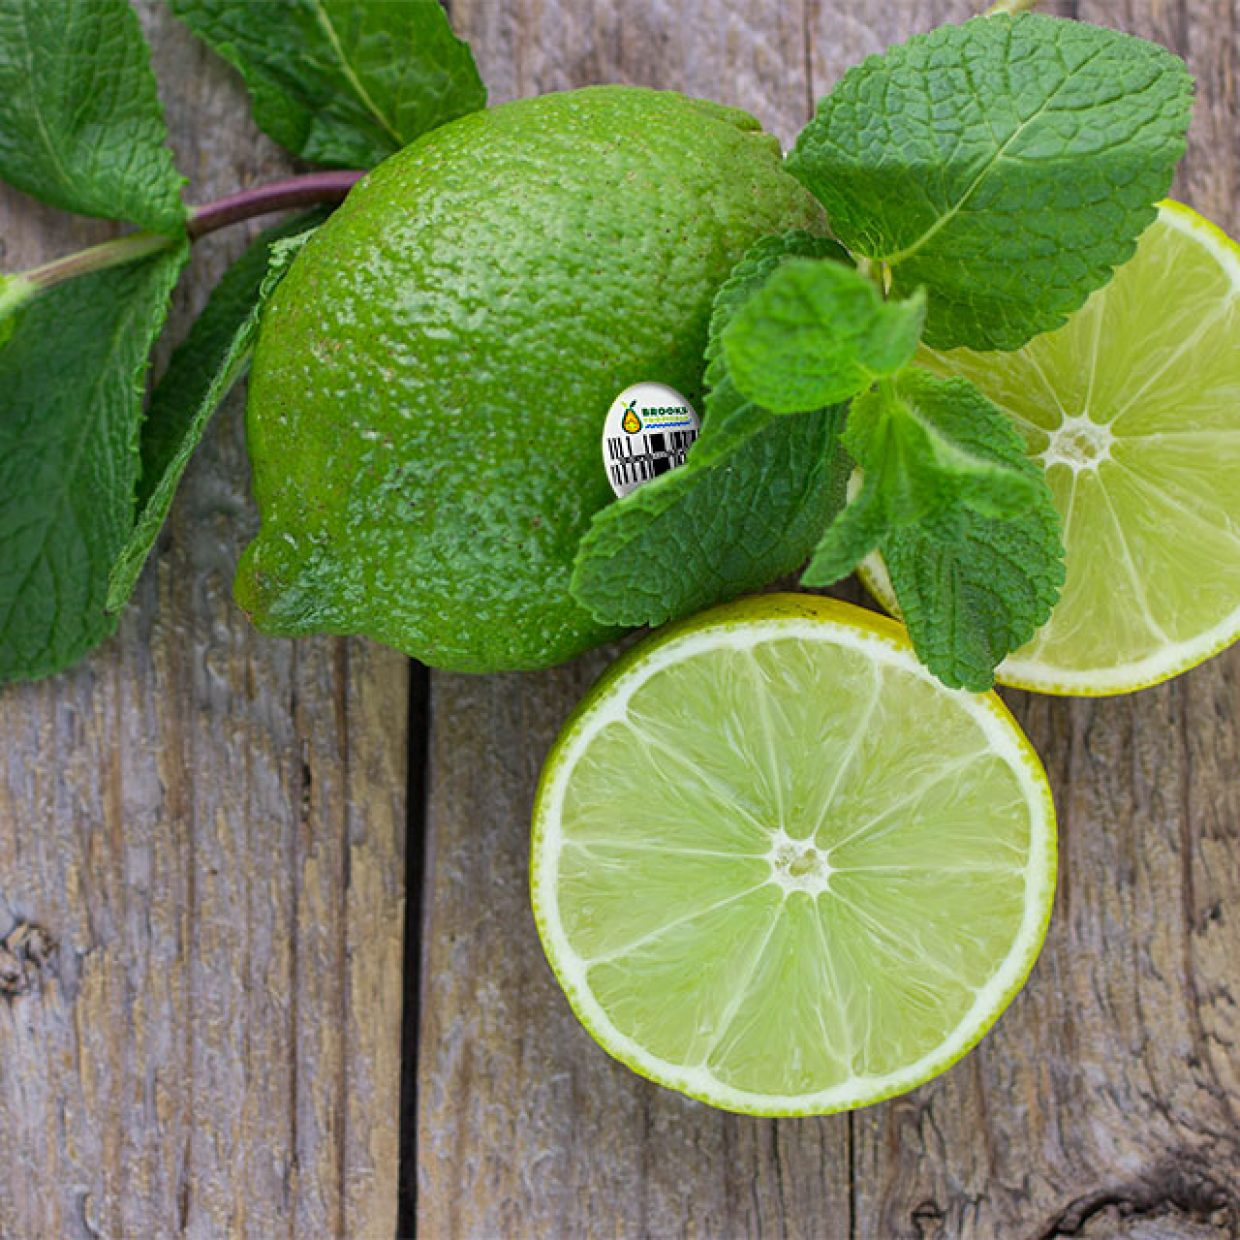 Limes, the perfect touch for almost any dish or drink